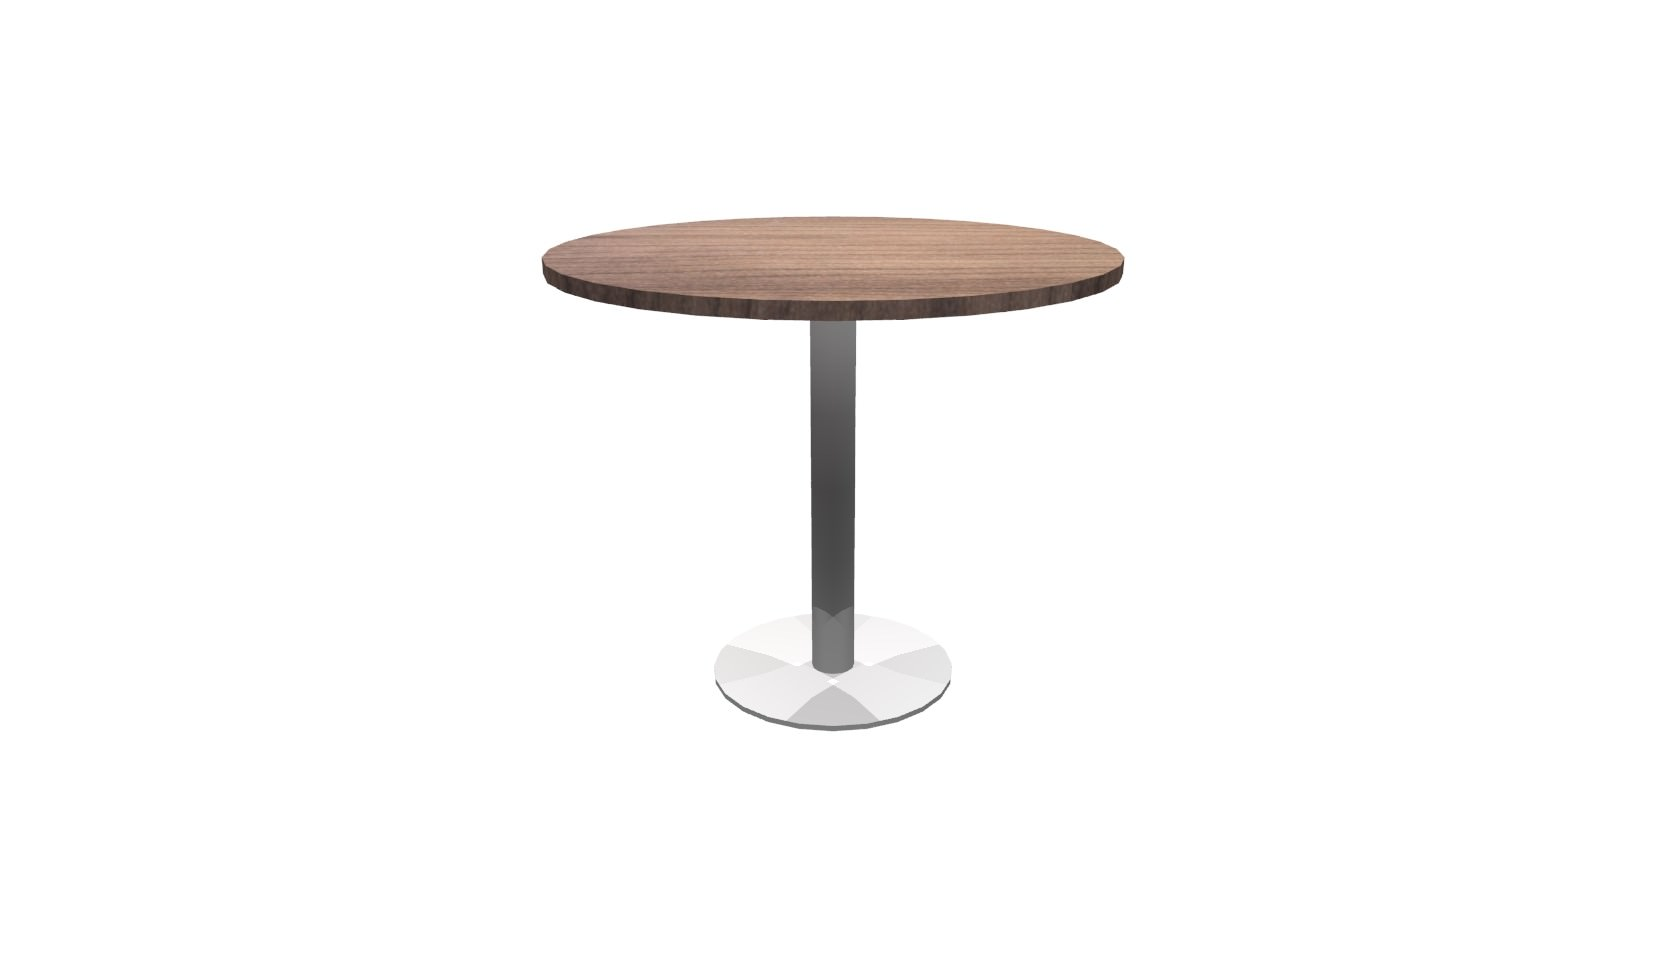 Inch Round Conference Table Modern Walnut Brushed Metal - 36 inch round conference table